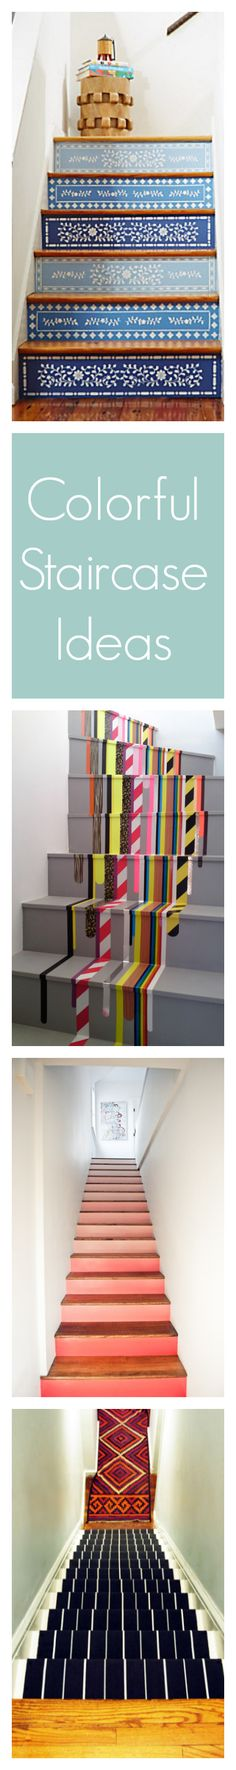 Colorful DIY Staircase Ideas